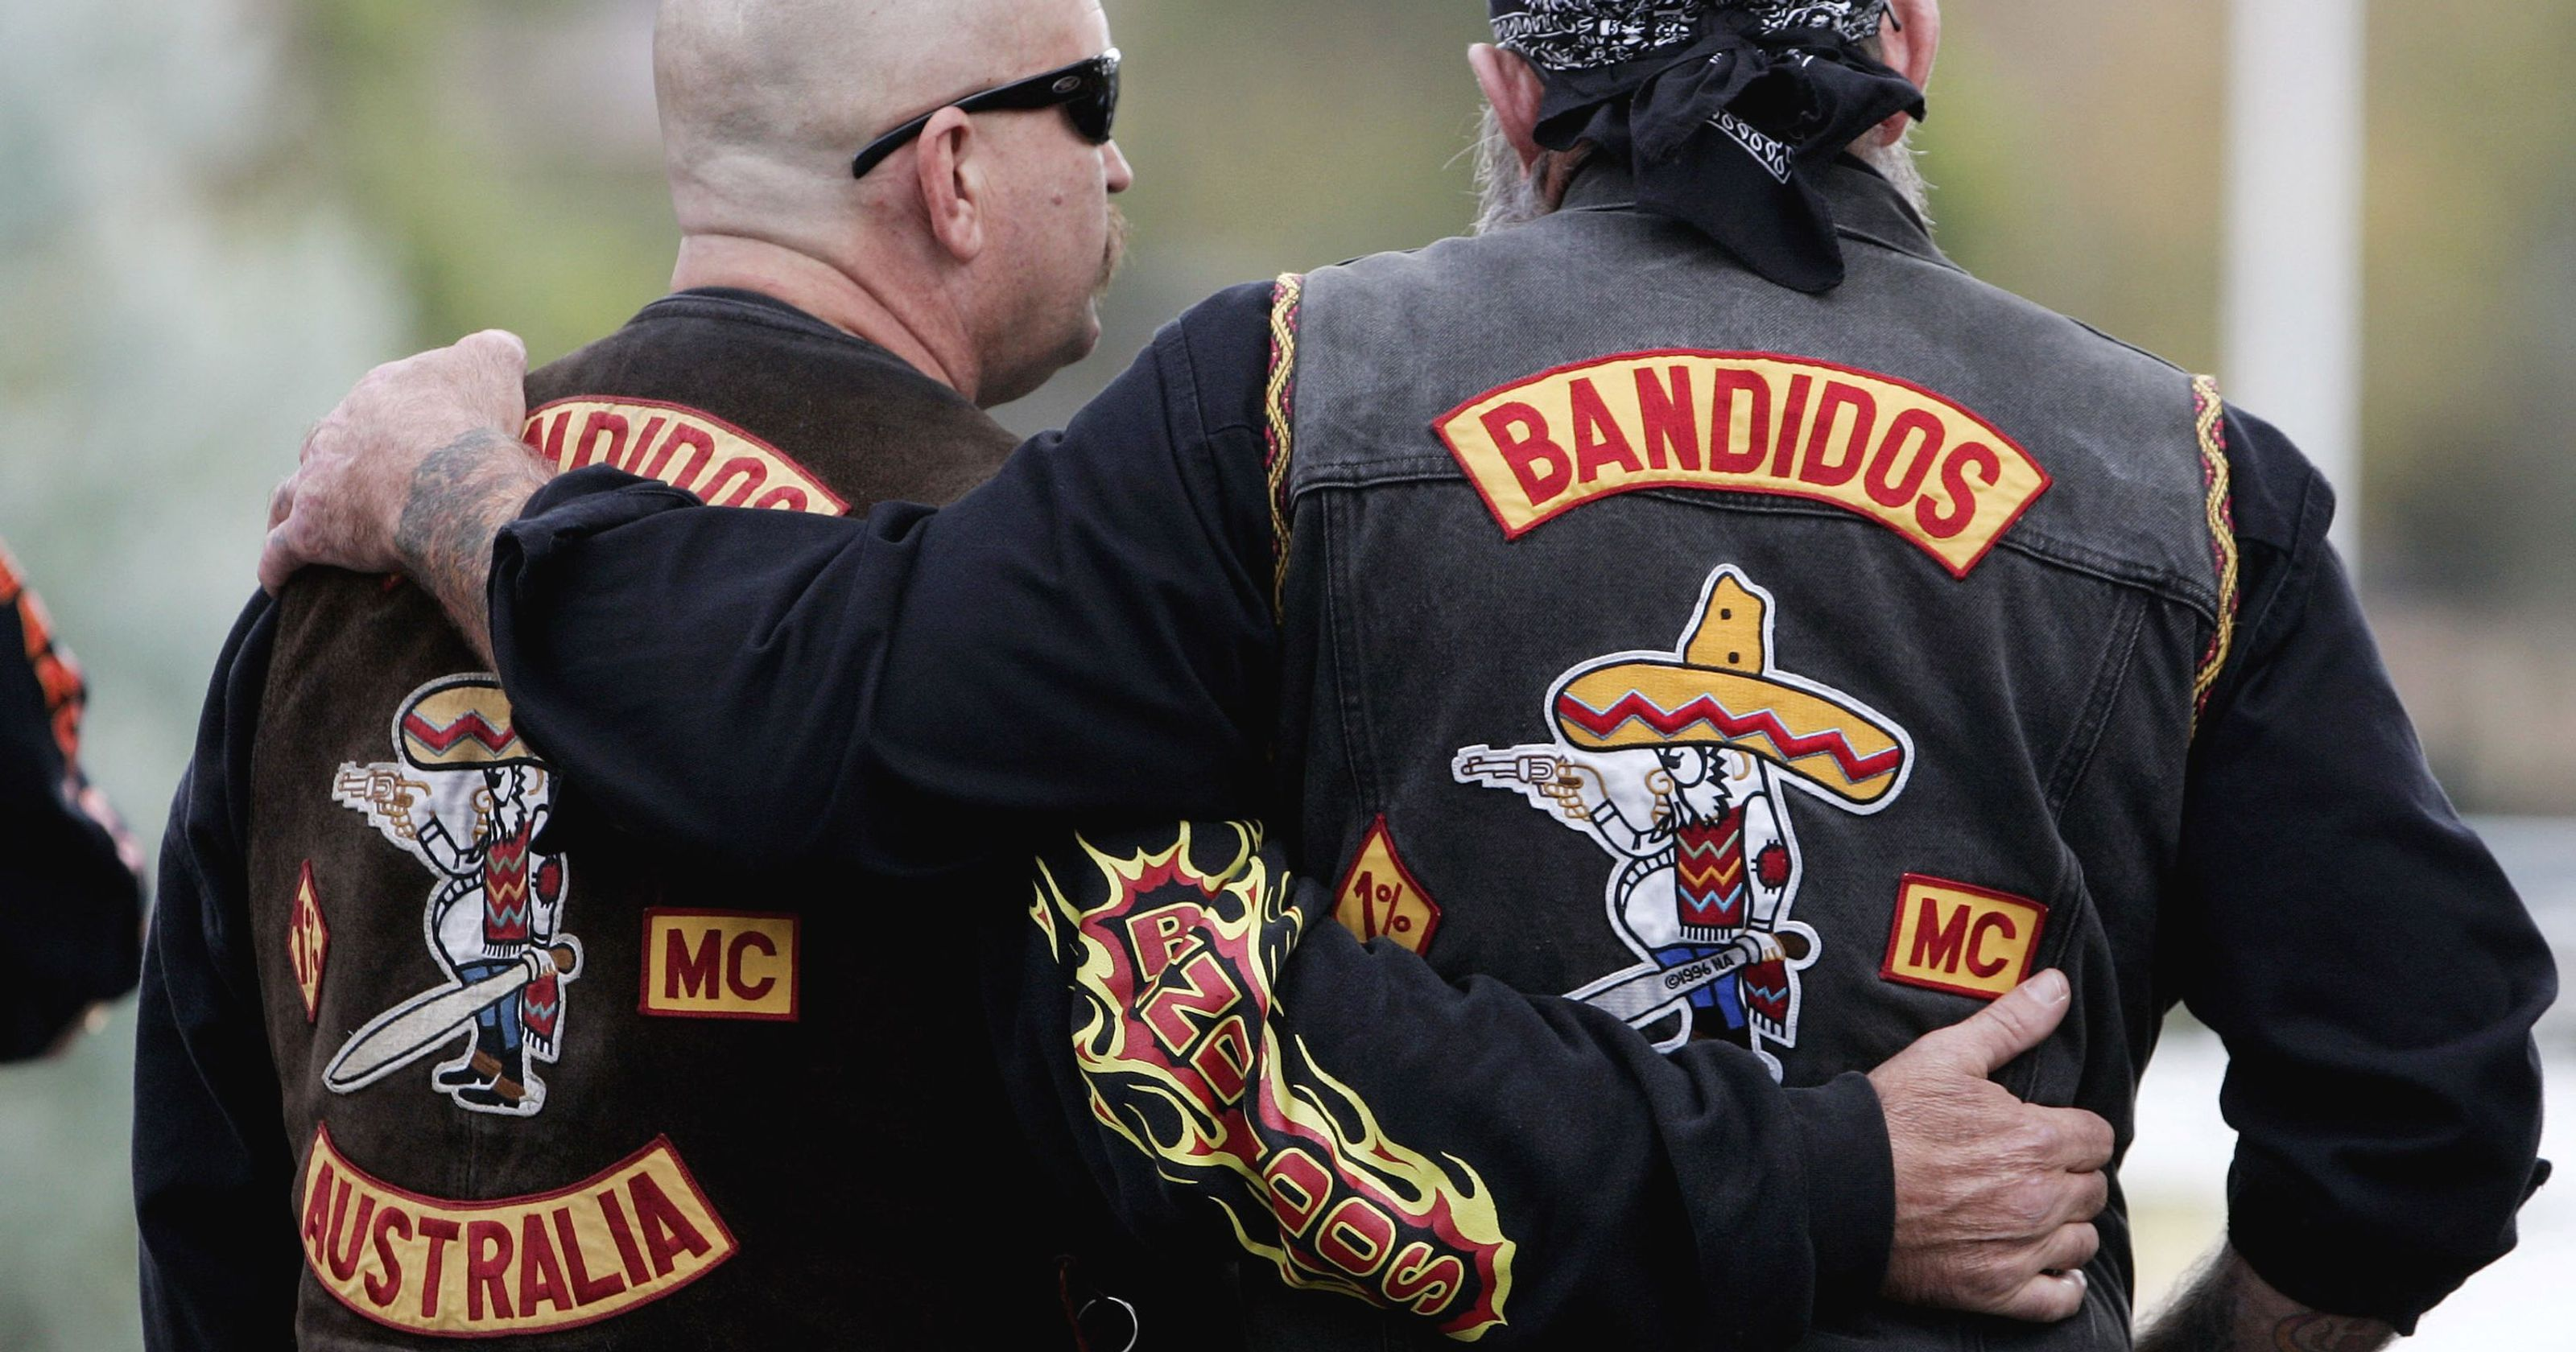 9 Motorcycle Clubs That Are Bad Guys (And 10 That Are Saving